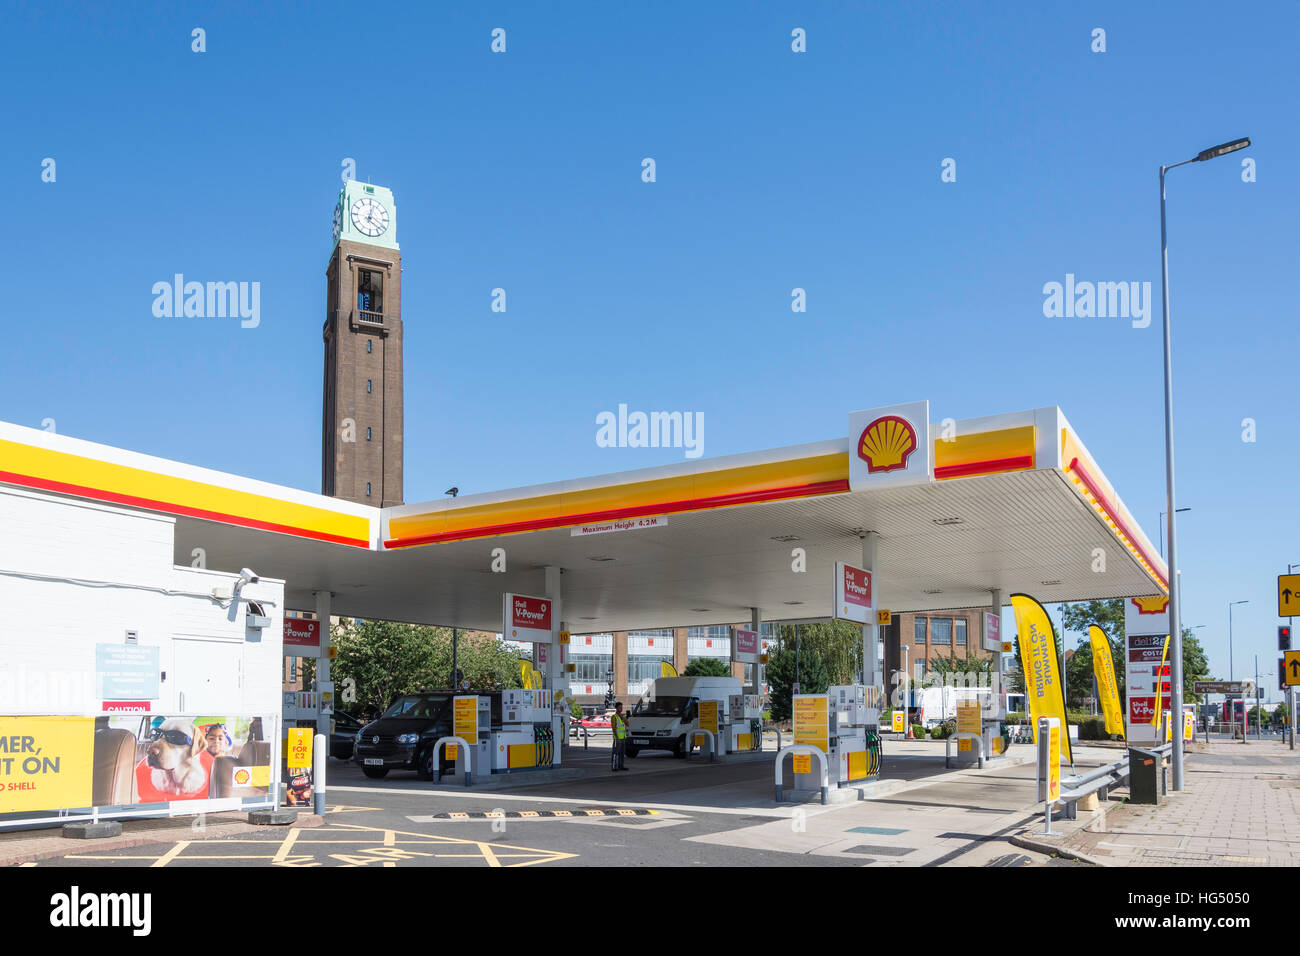 Shell garage, Gillette Corner, Great West Road, Isleworth, London Borough of Hounslow, Greater London, England, - Stock Image